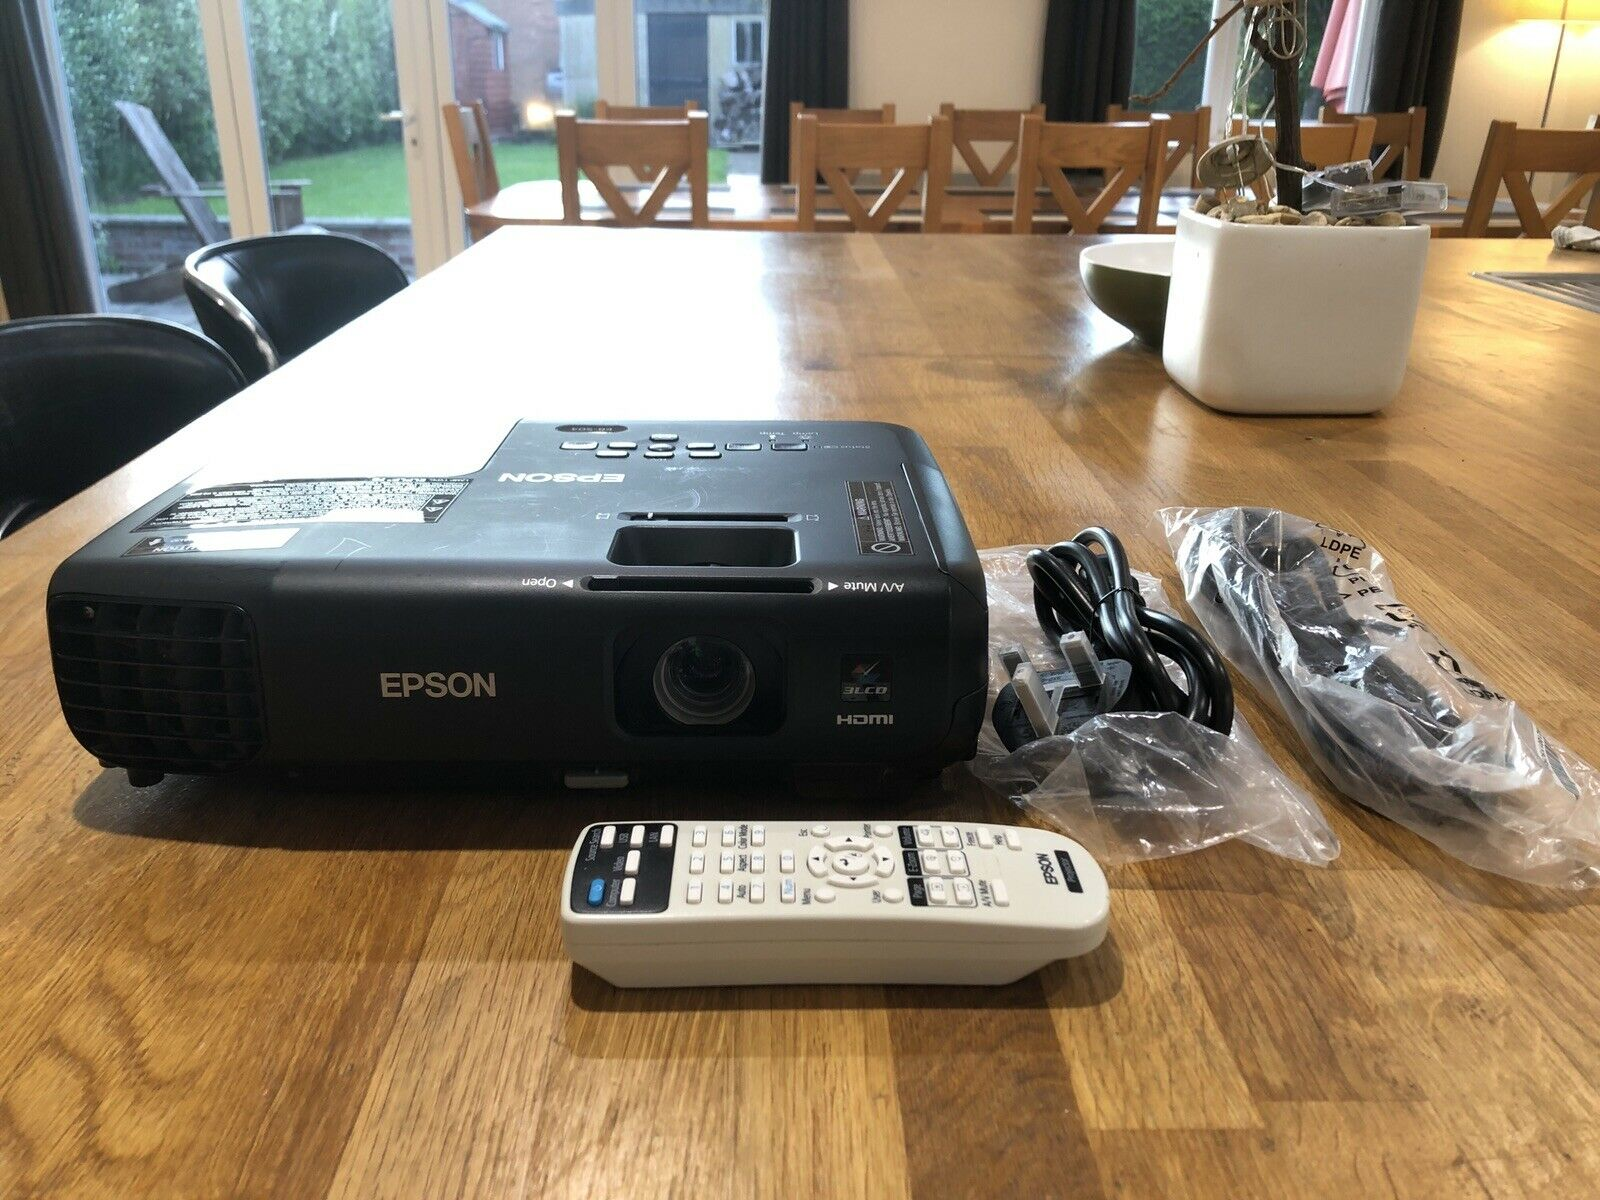 Epson EB-S03 Home Projector HDMI with Remote, Cables, Only 31 Lamp Hours Used